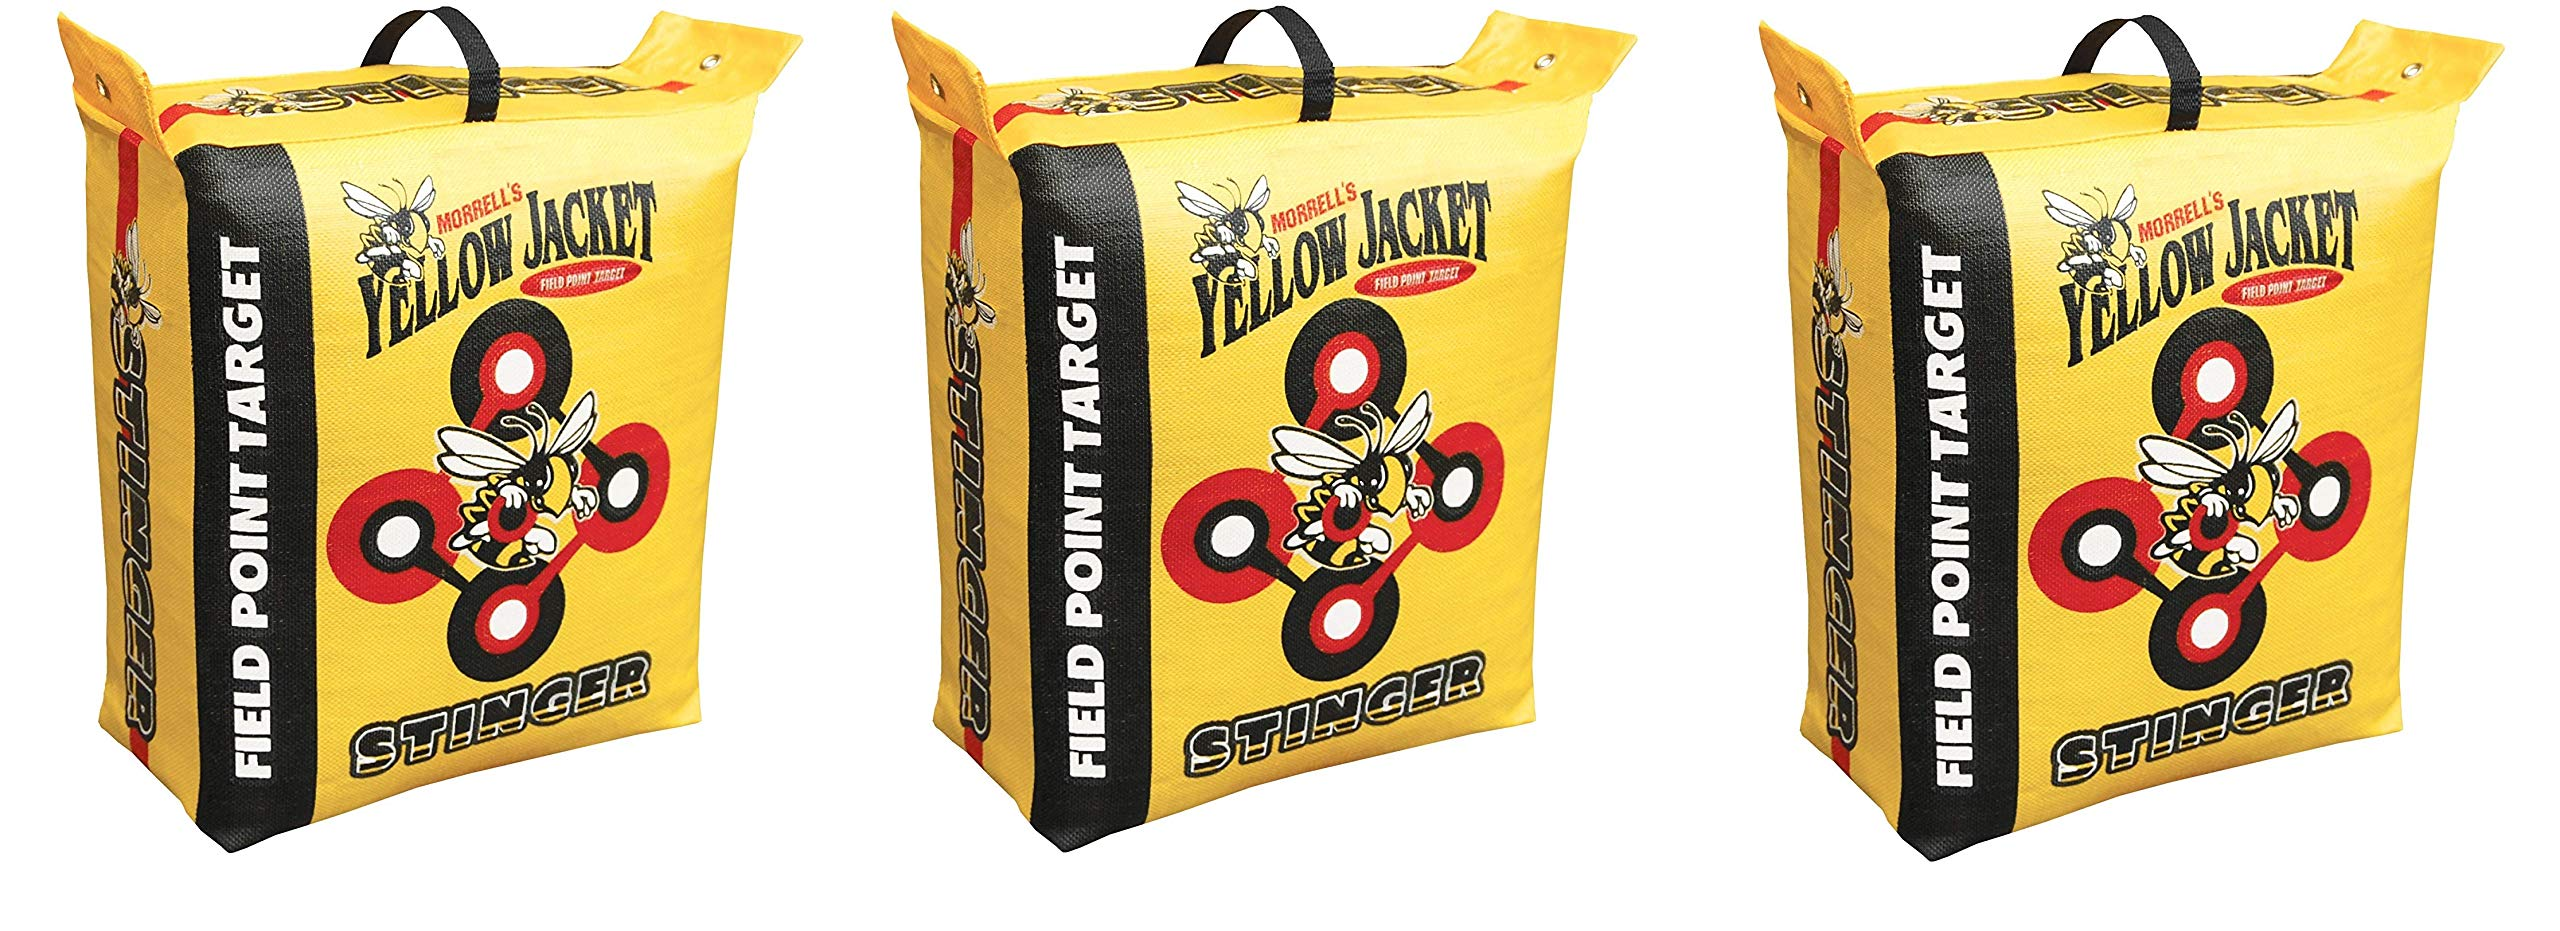 Morrell Yellow Jacket Stinger Field Point Bag Archery Target - Great for Compound and Traditional Bows (3-Pack) by Morrell